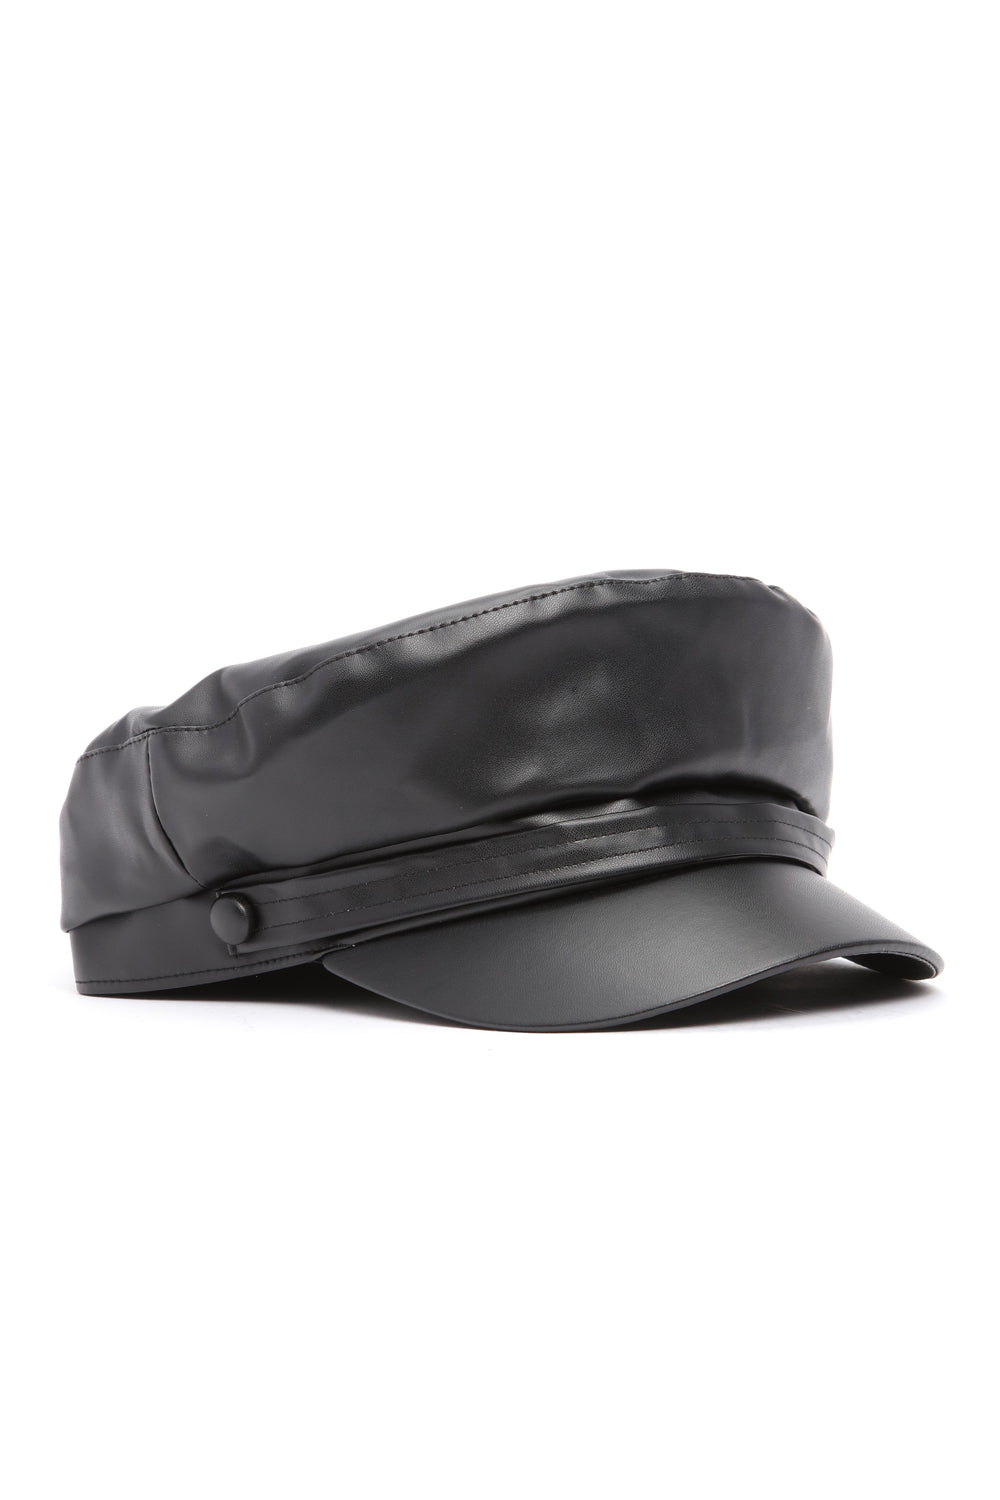 Is The Cabby Here Hat - Black